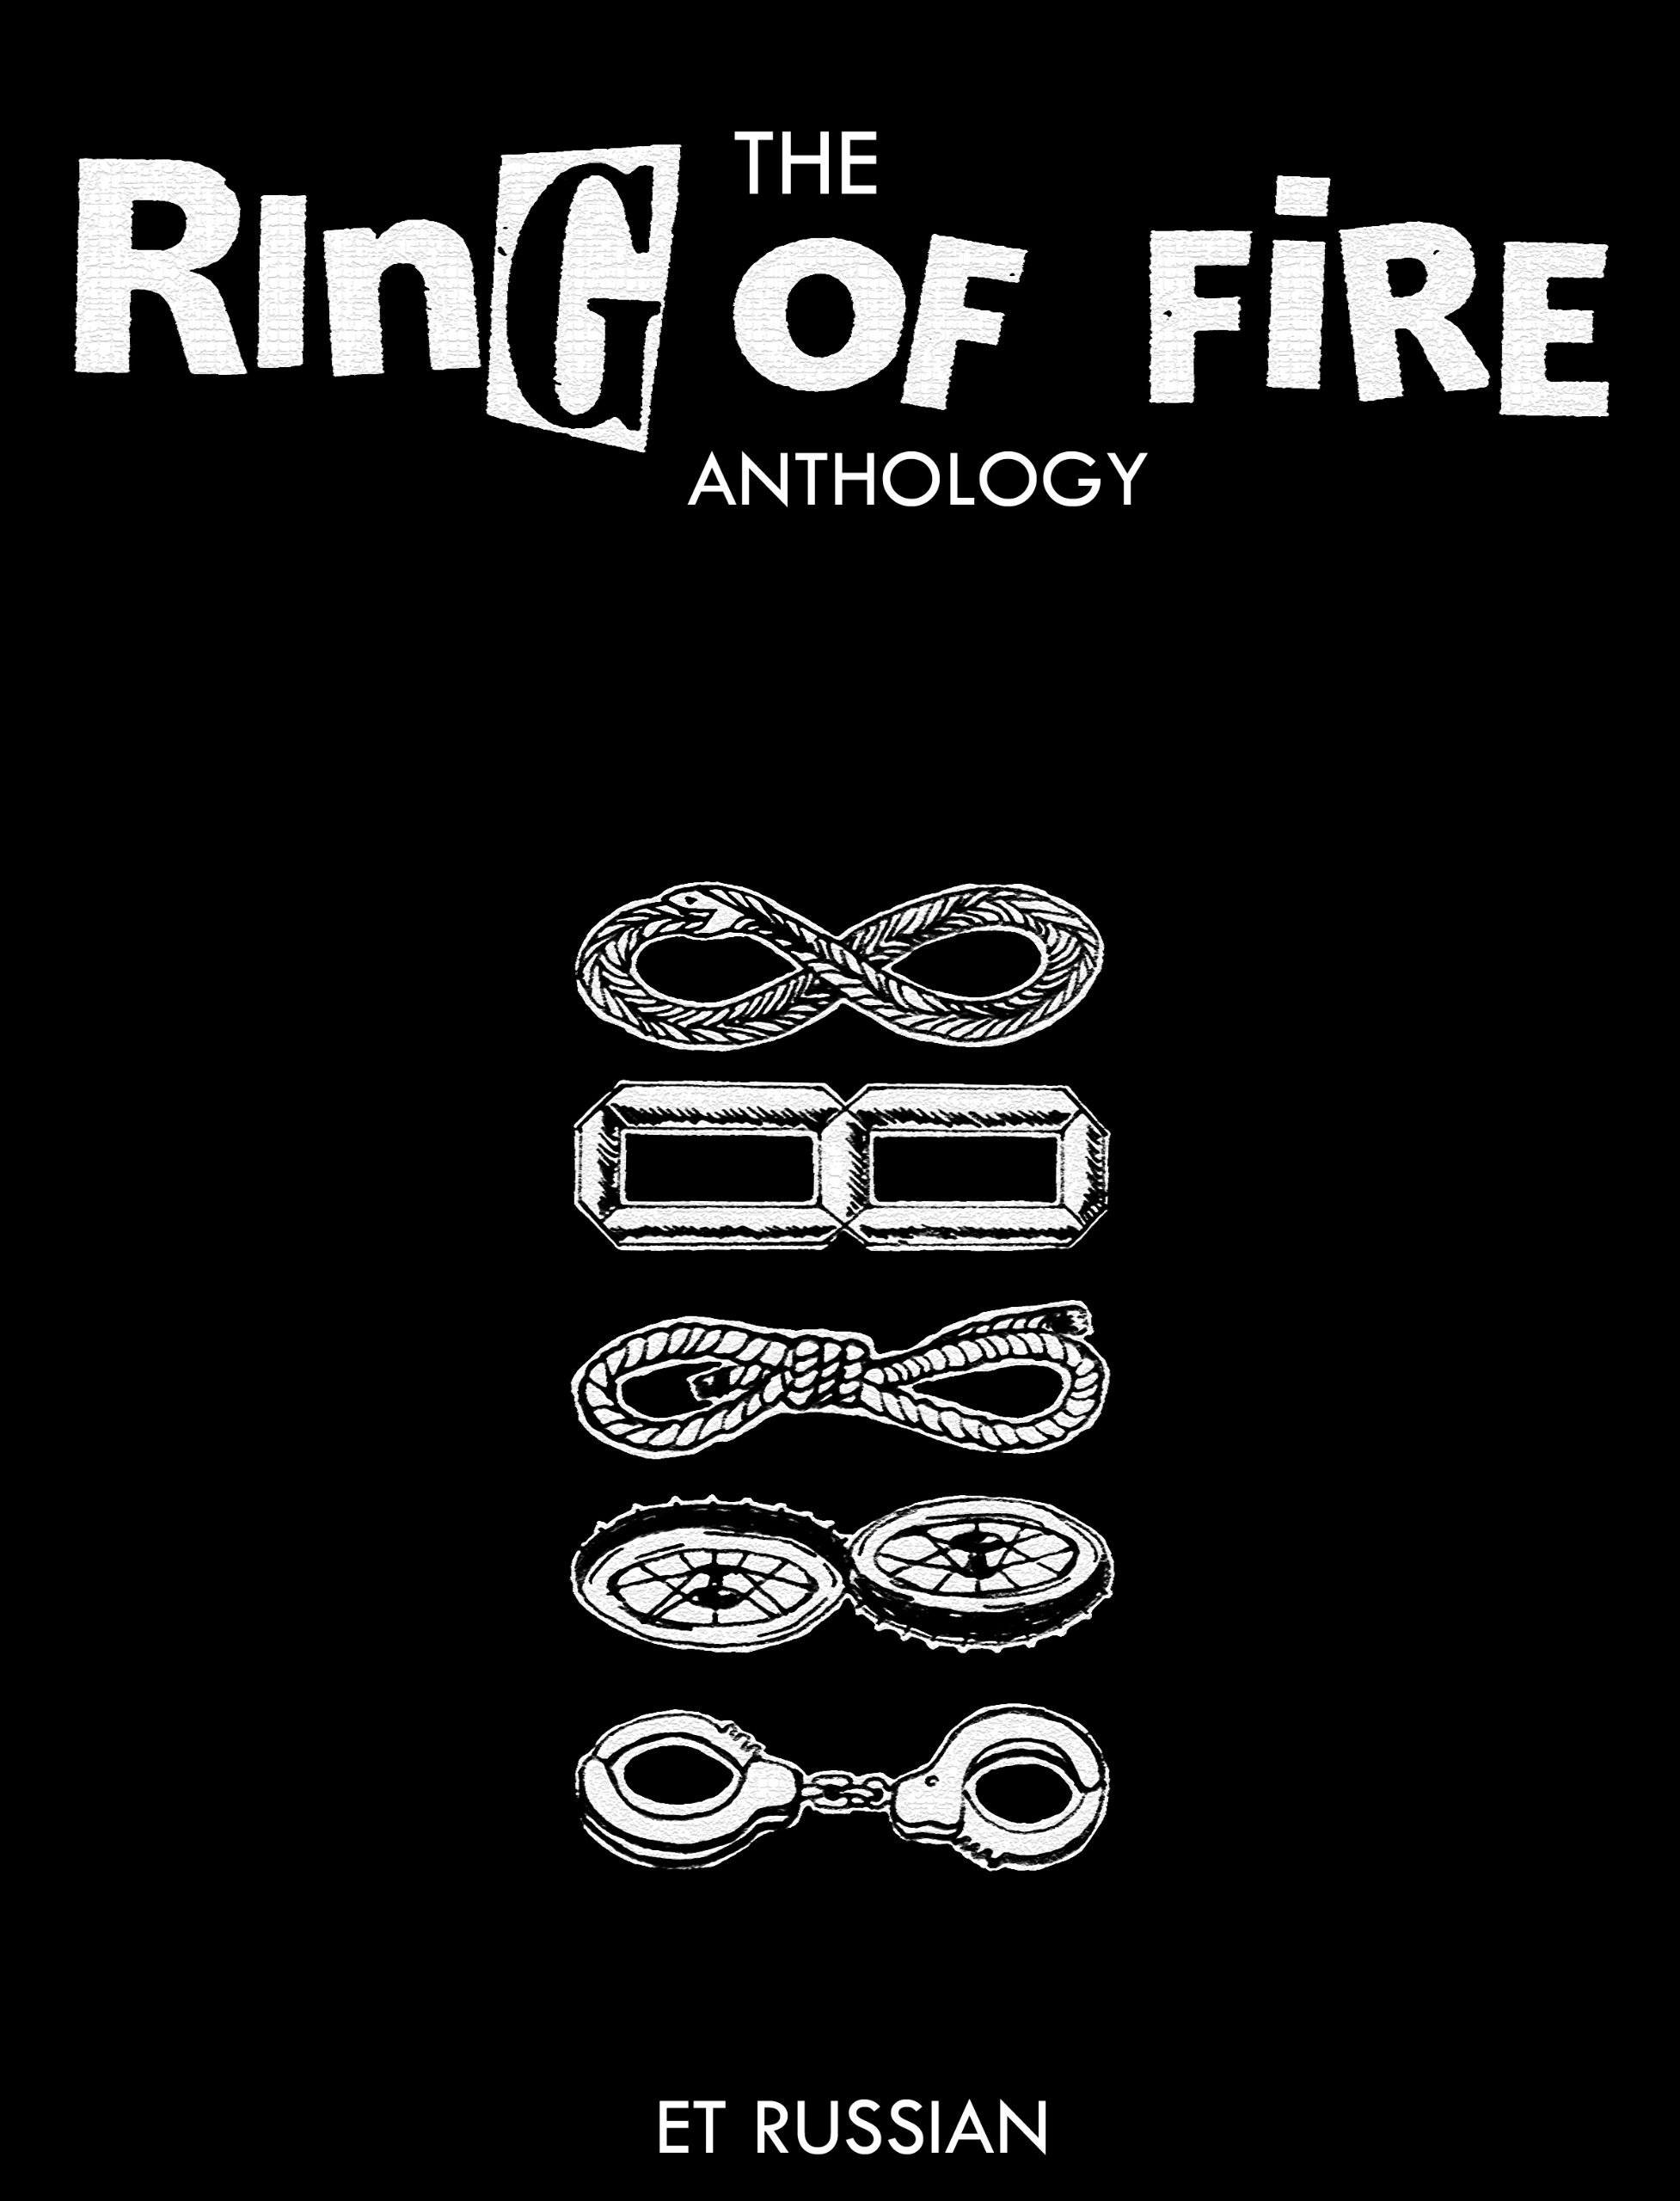 The Ring of Fire Anthology, ET Russian